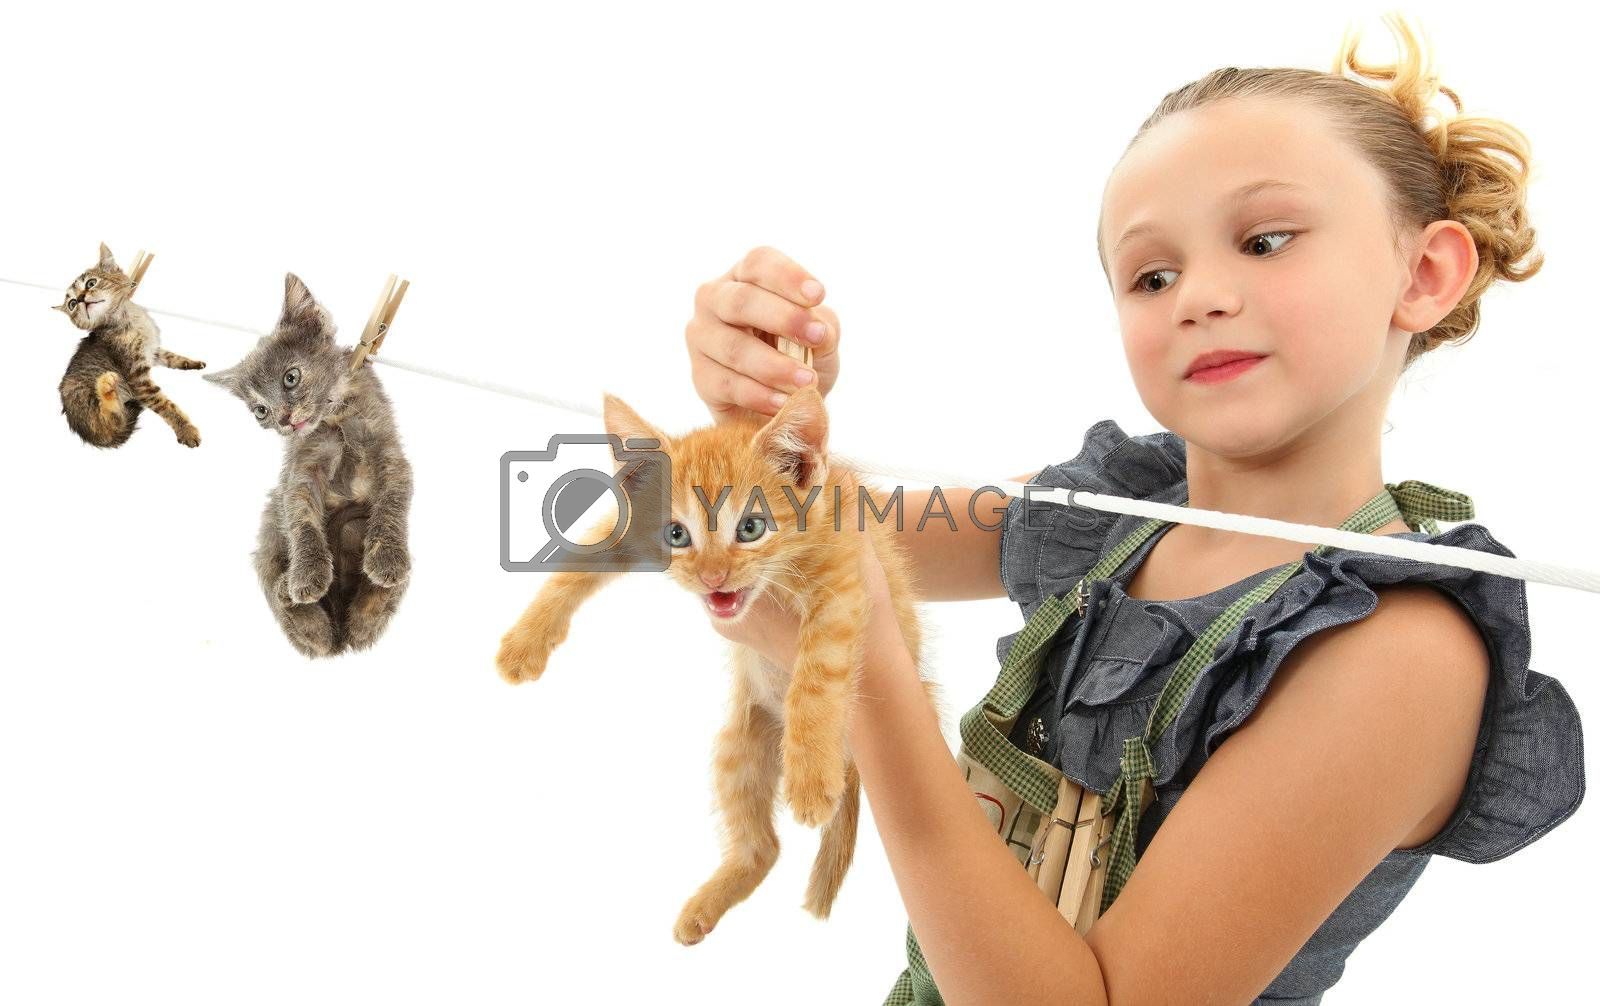 Image manipulation of girl child hanging kittens on a clothes line over white background.